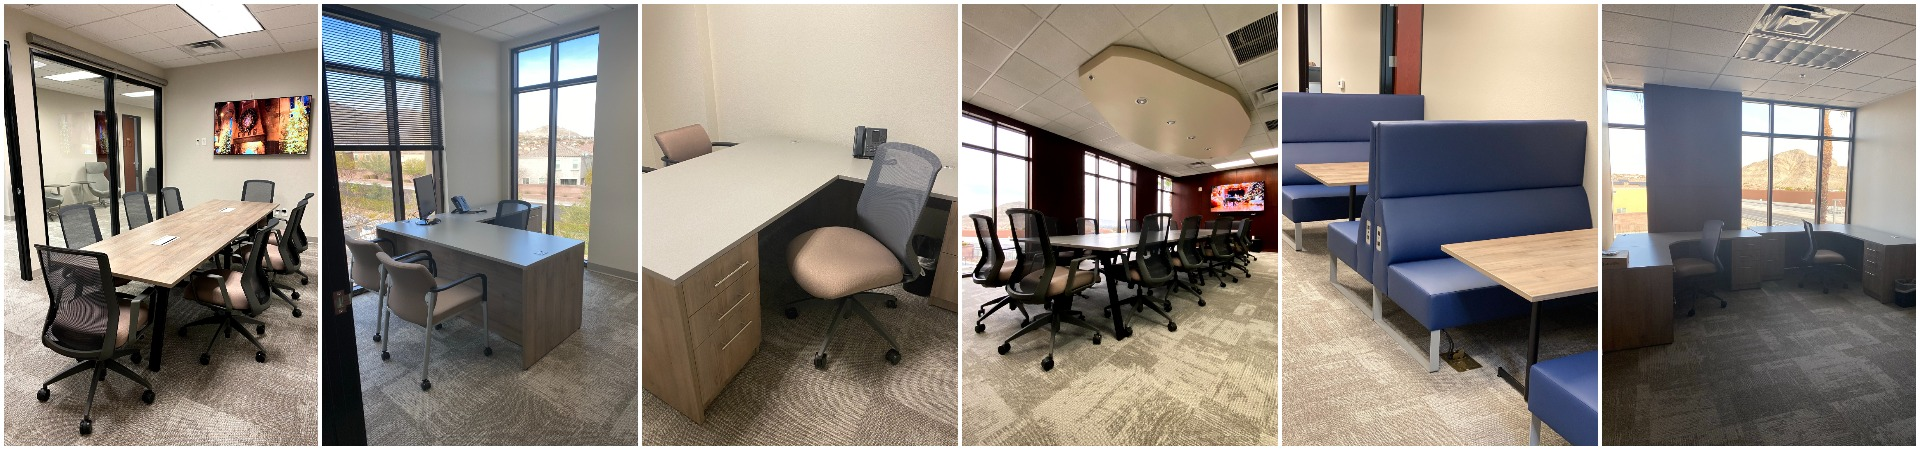 Take Advantage of Our Flexible Office Space for Lease